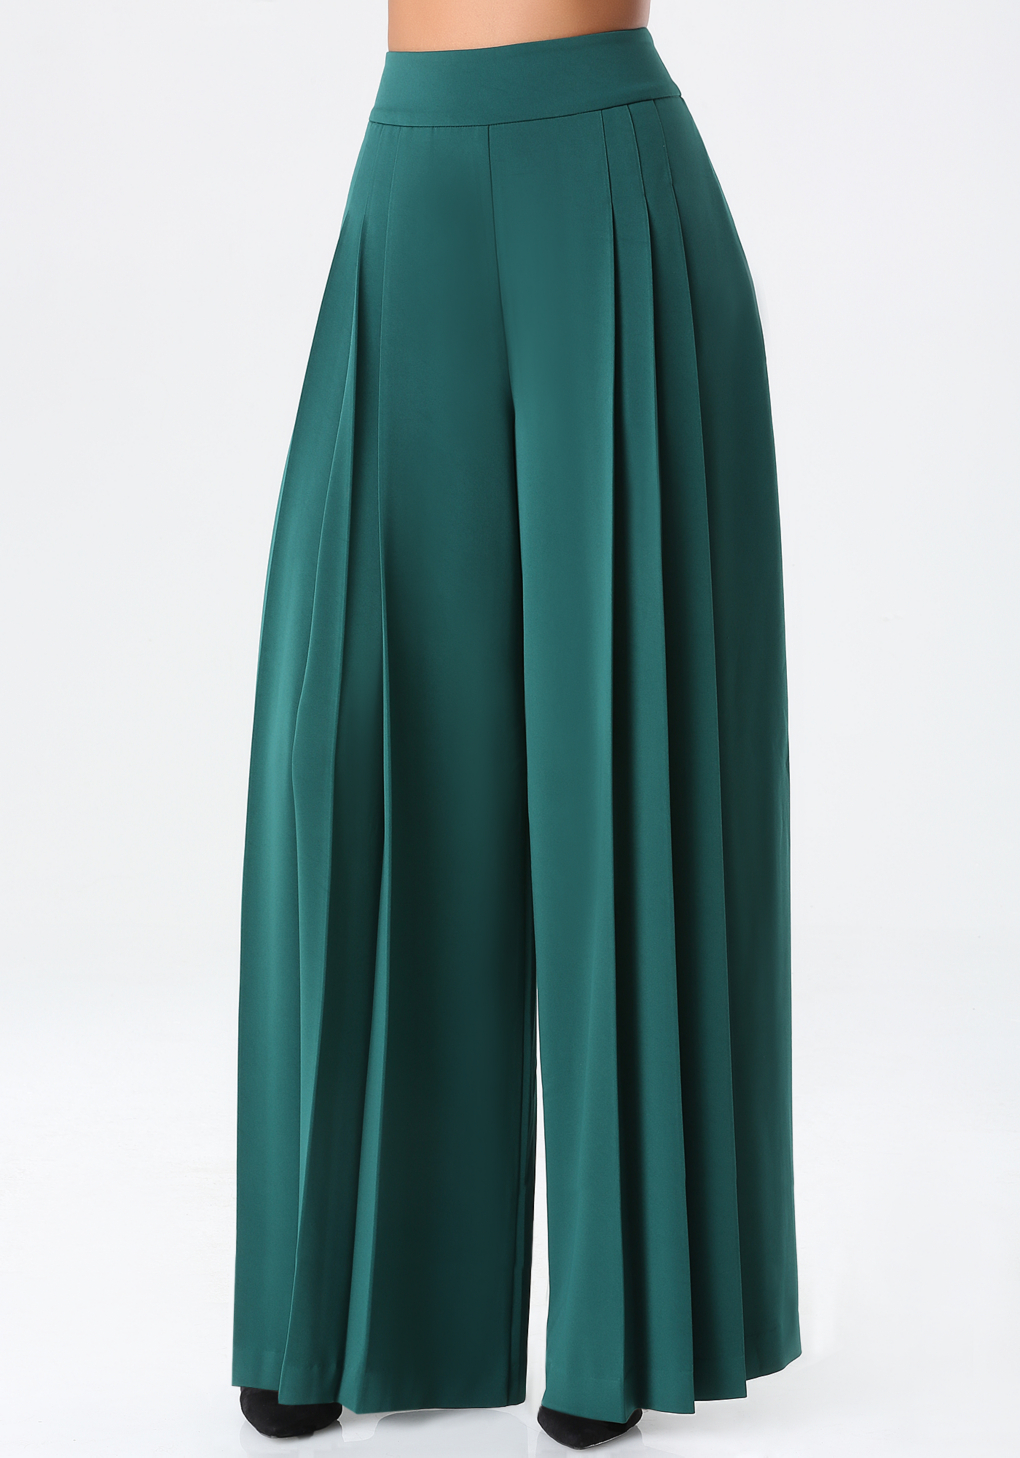 Bebe Pleated Wide Leg Pants in Green | Lyst